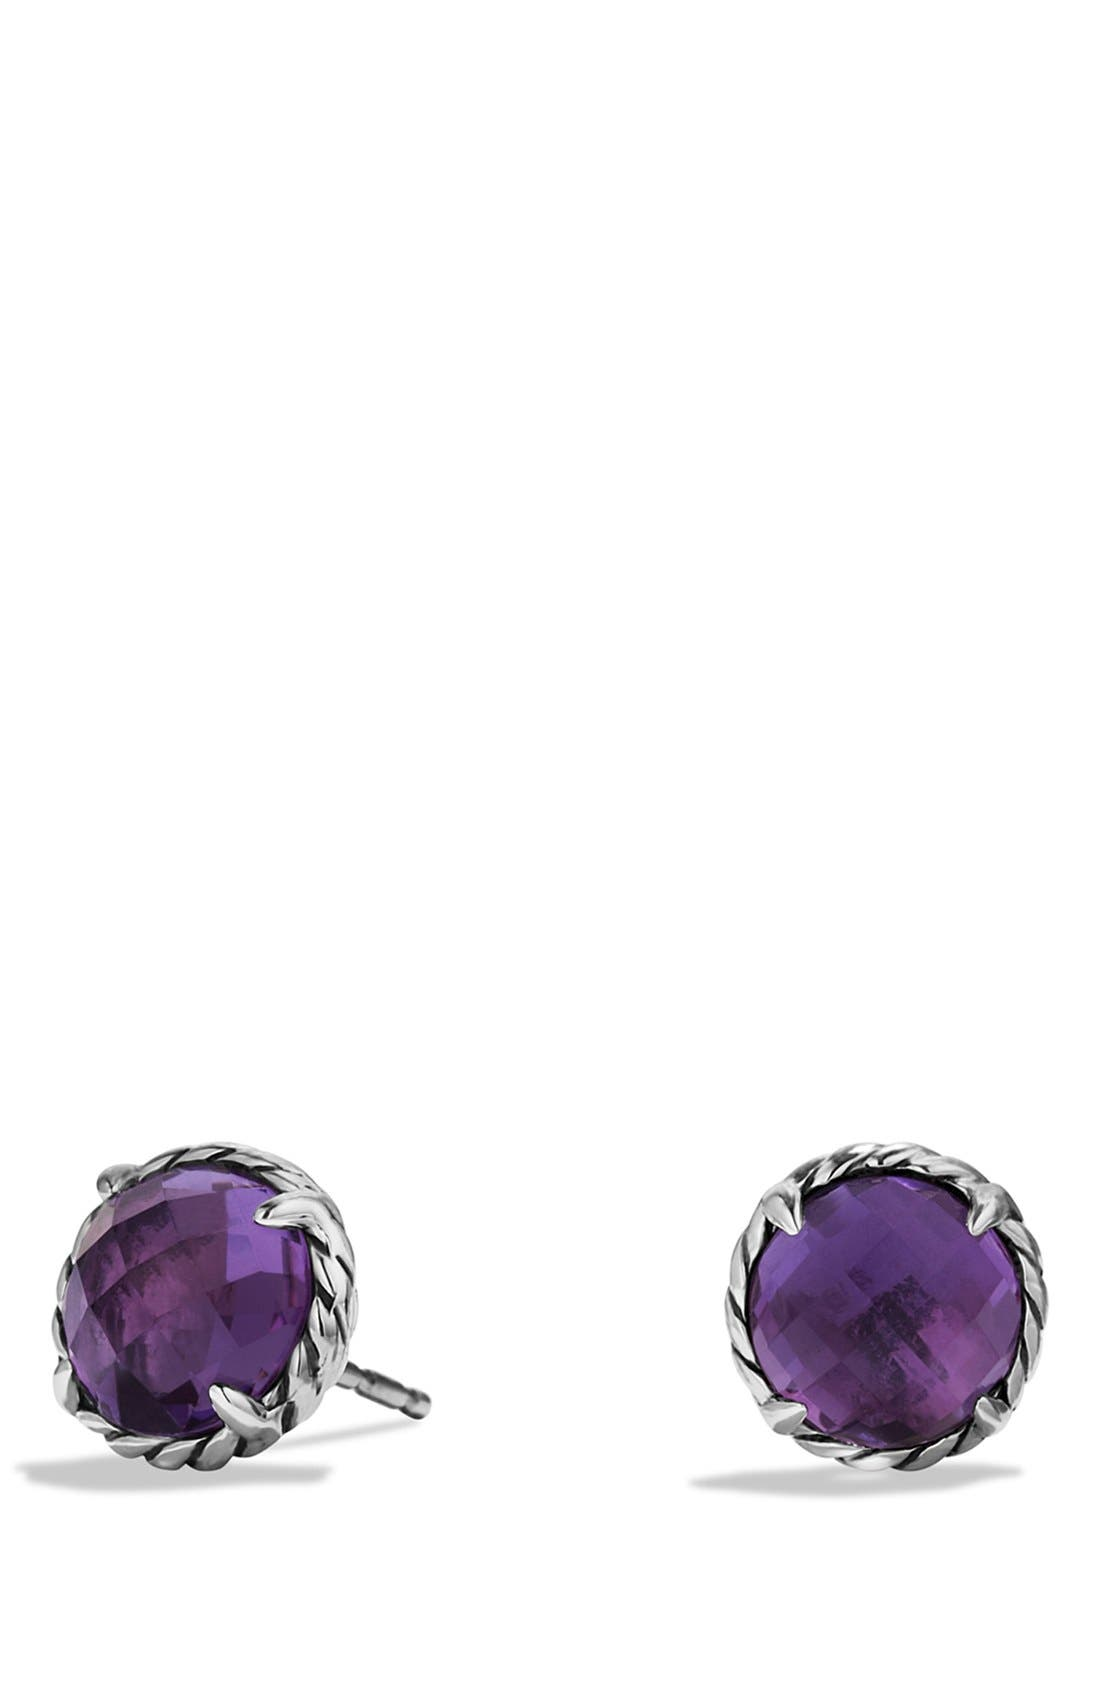 David Yurman 'Châtelaine' Earrings